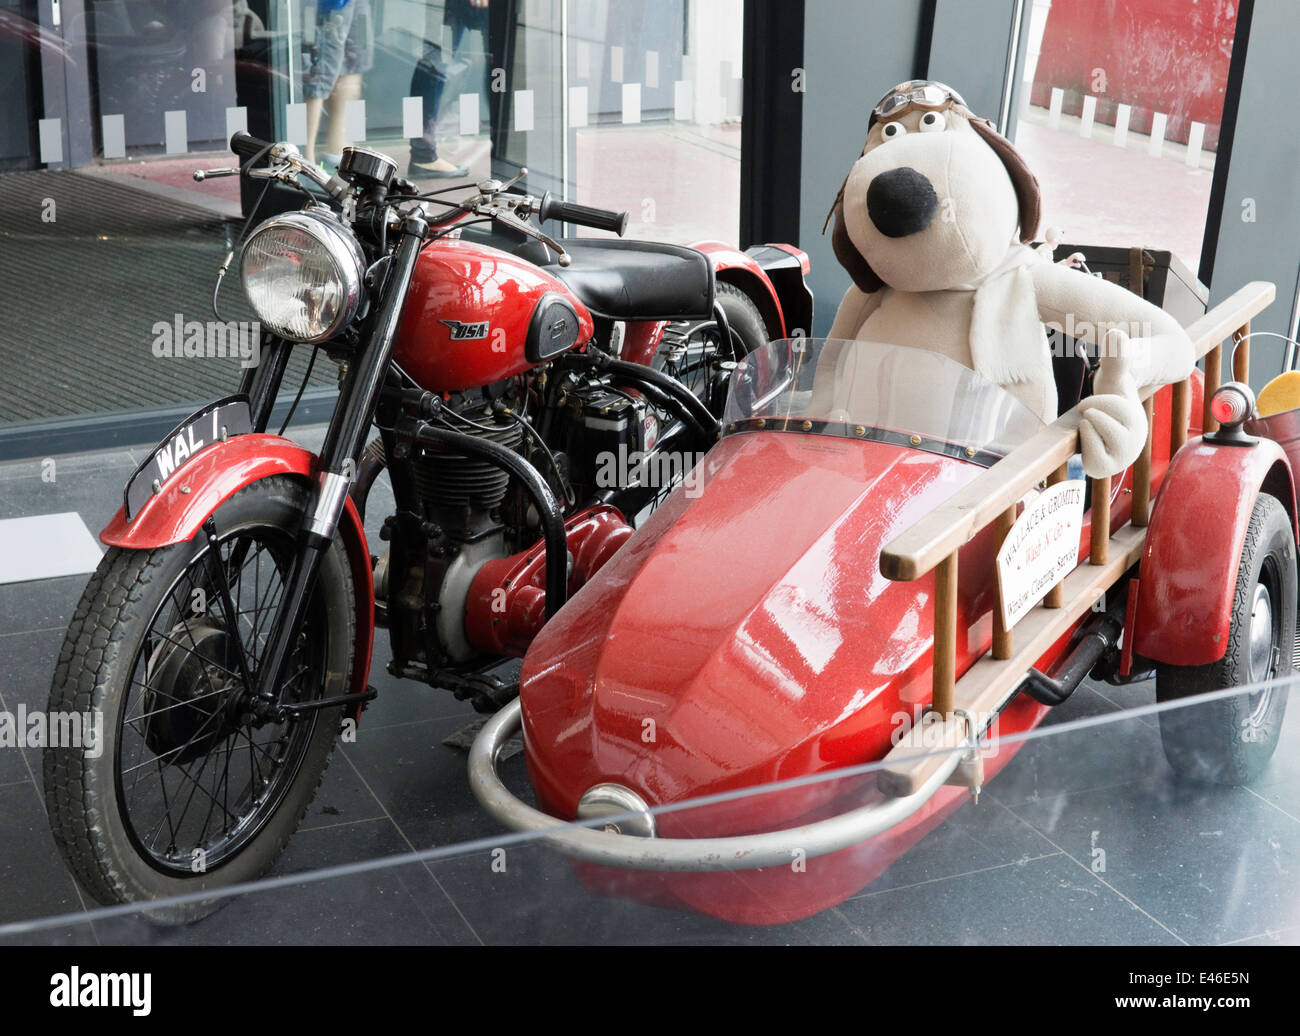 The Wallace And Gromit Motorbike And Sidecar On Exhibition